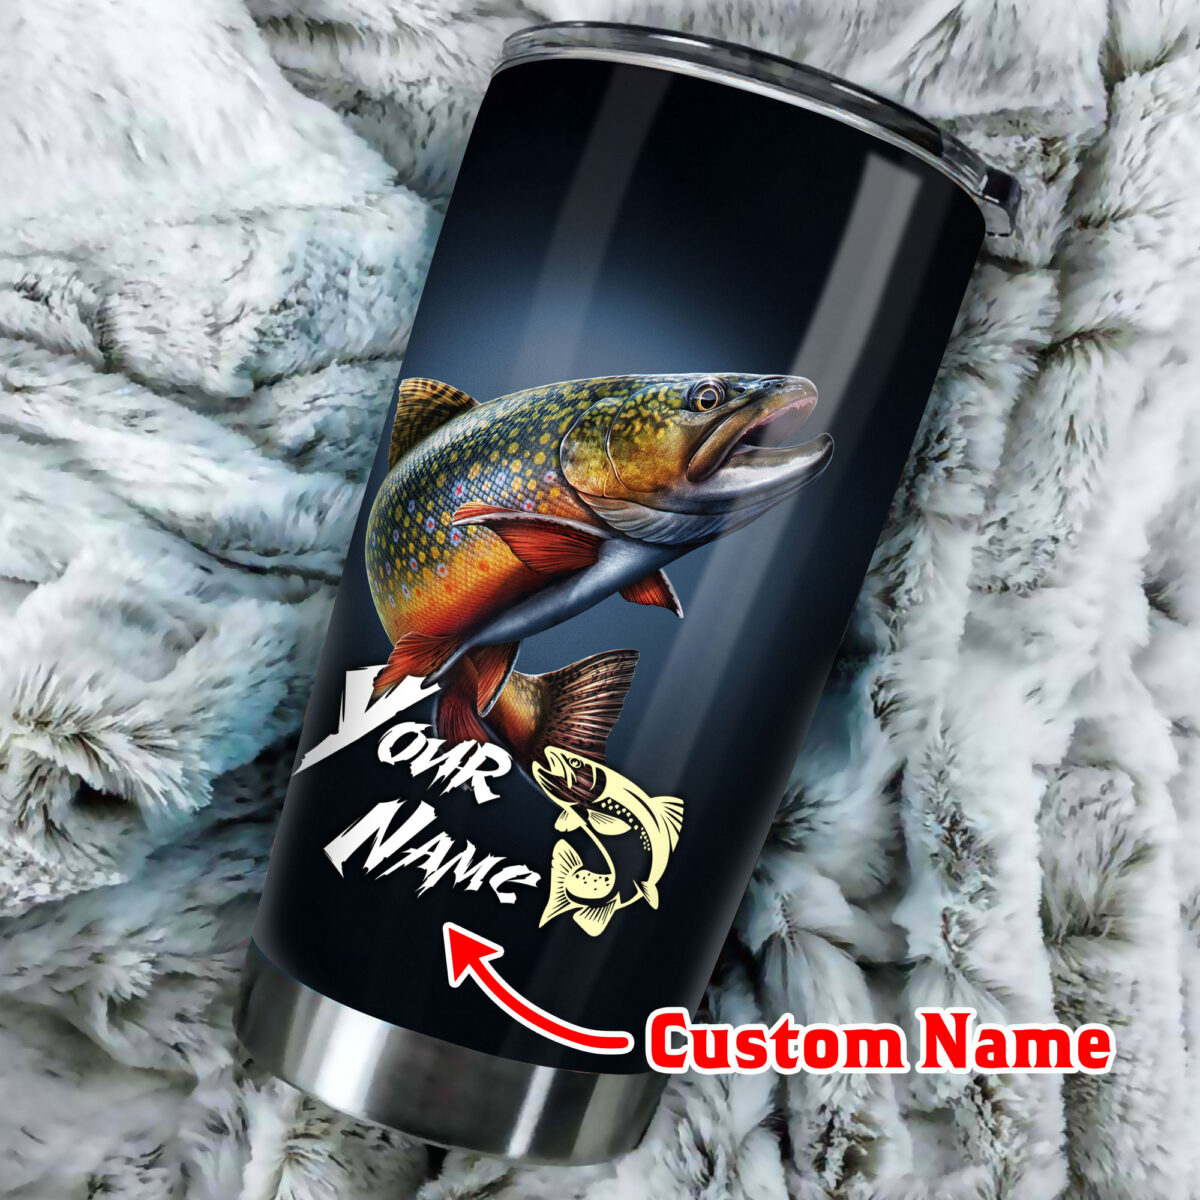 custom name trout fishing all over print stainless steel tumbler 4